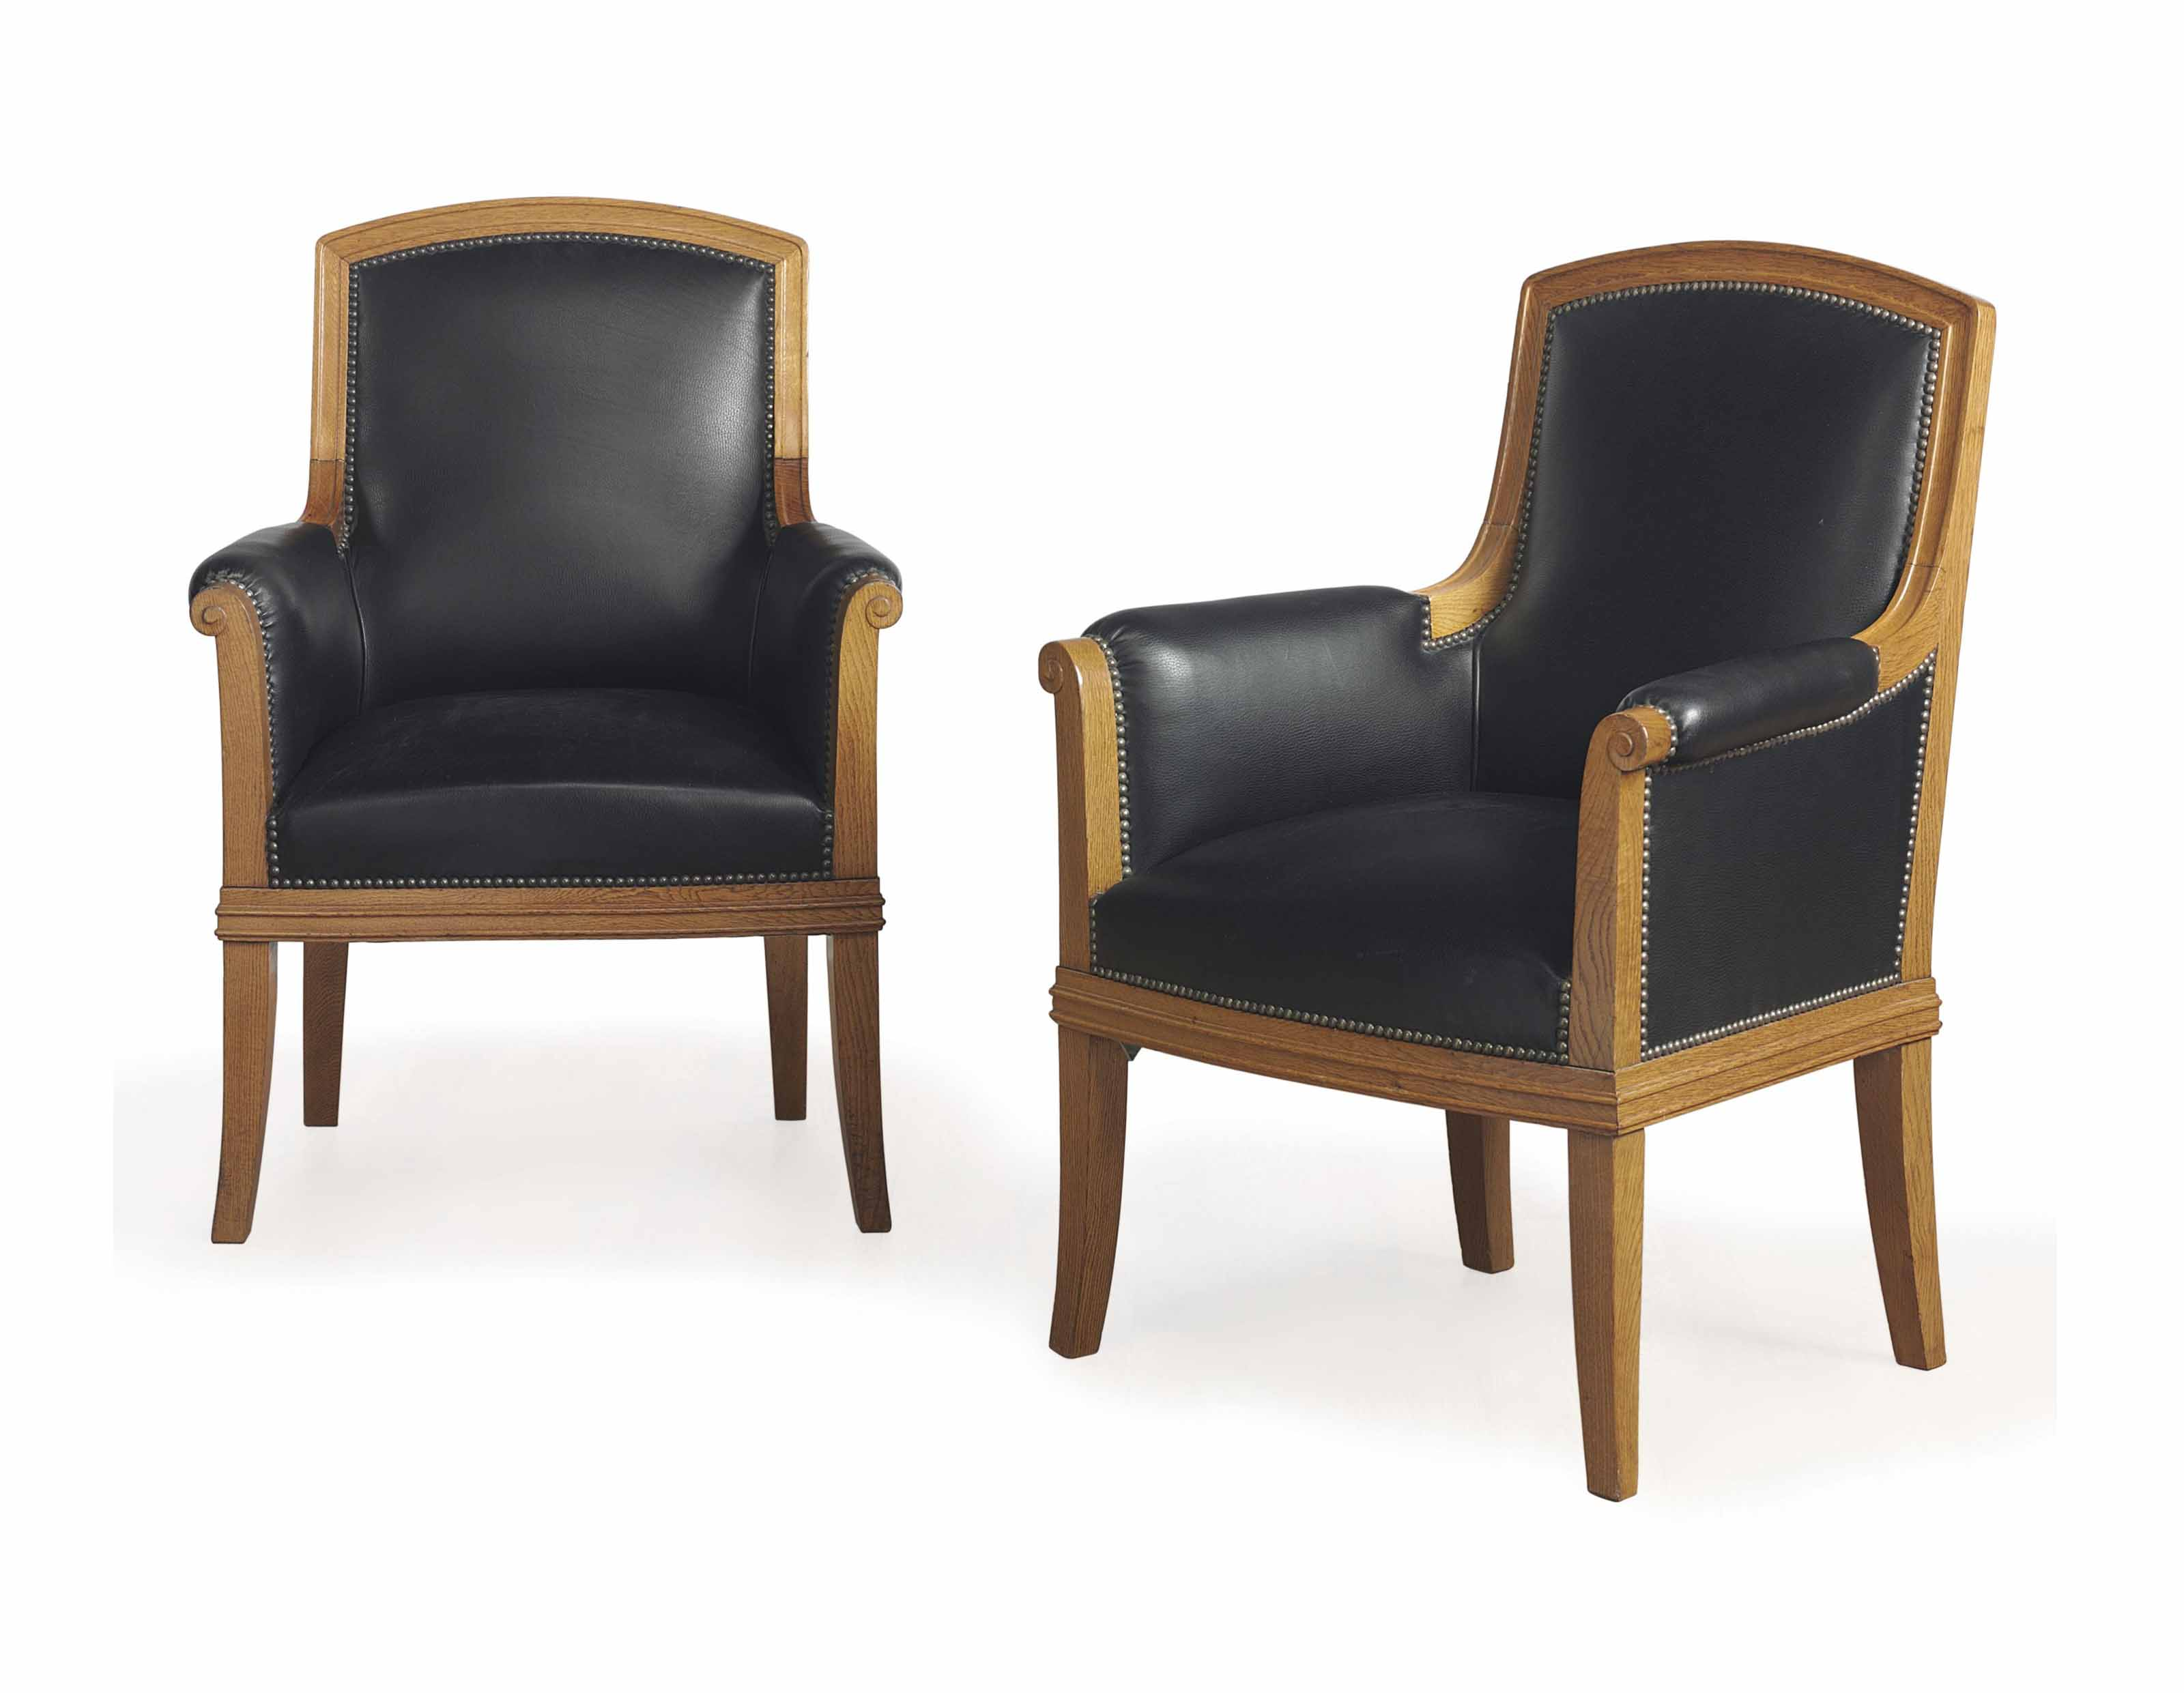 A PAIR OF FRENCH OAK AND LEATHER UPHOLSTERED ARMCHAIRS,